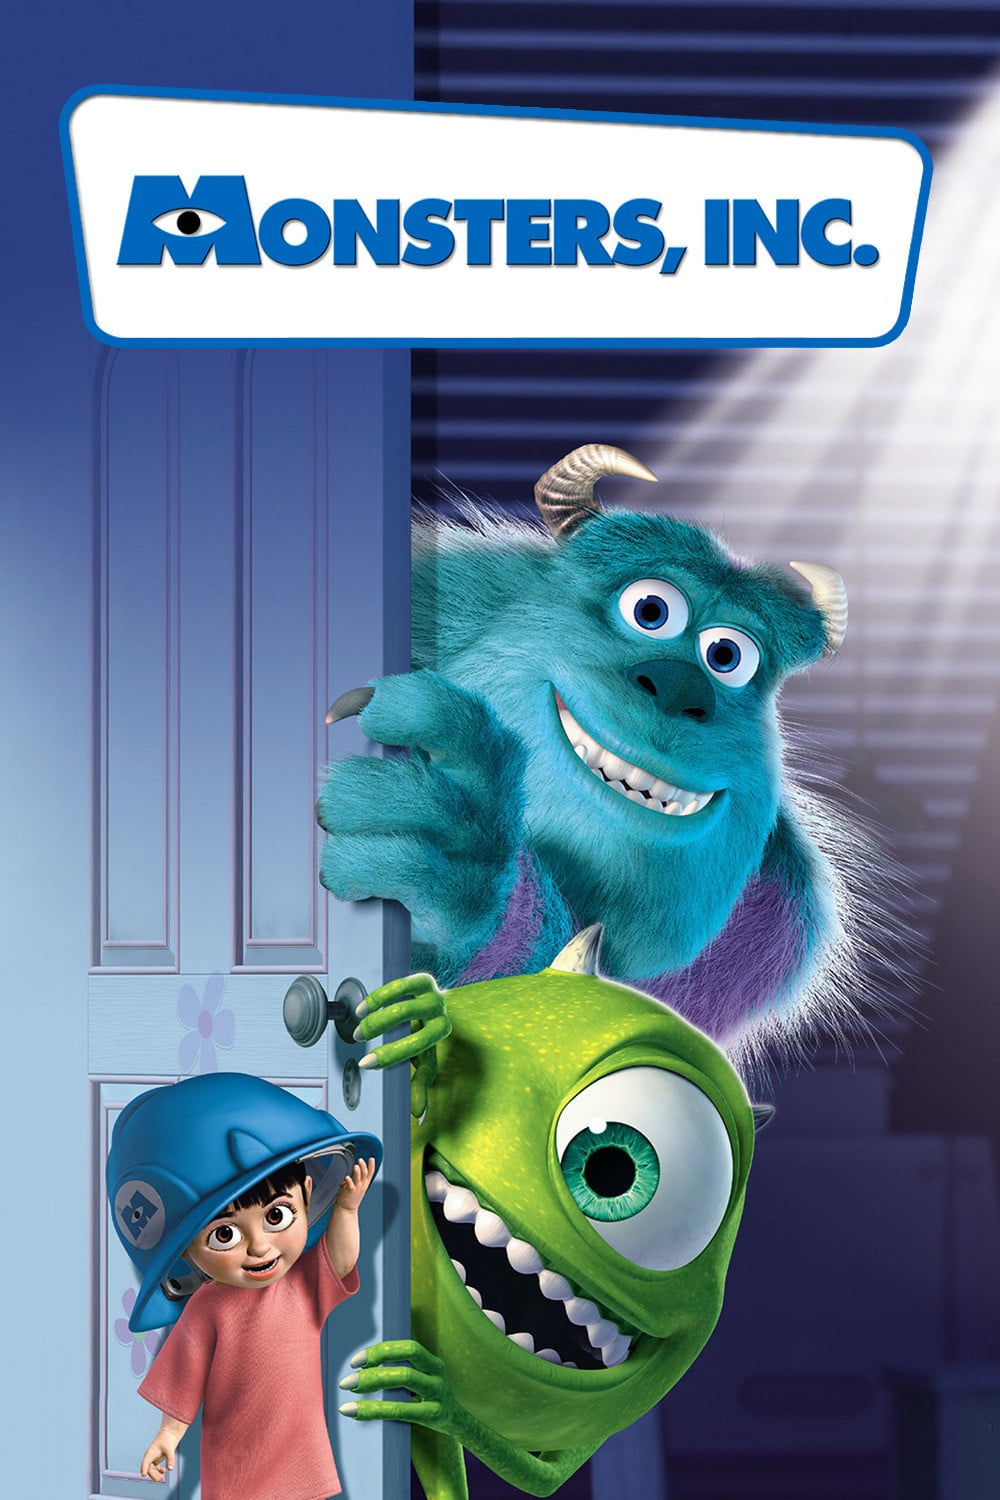 Monster's Inc. (2001) - Directed by: Pete DoctorStarring: John Goodman, Billy Crystal, Steve BuscemiRated: GRunning Time: 1h 32mTMM Score: 4.5 StarsSTRENGTHS: Animation, Characters, FunWEAKNESSES: Glaring Plot Hole